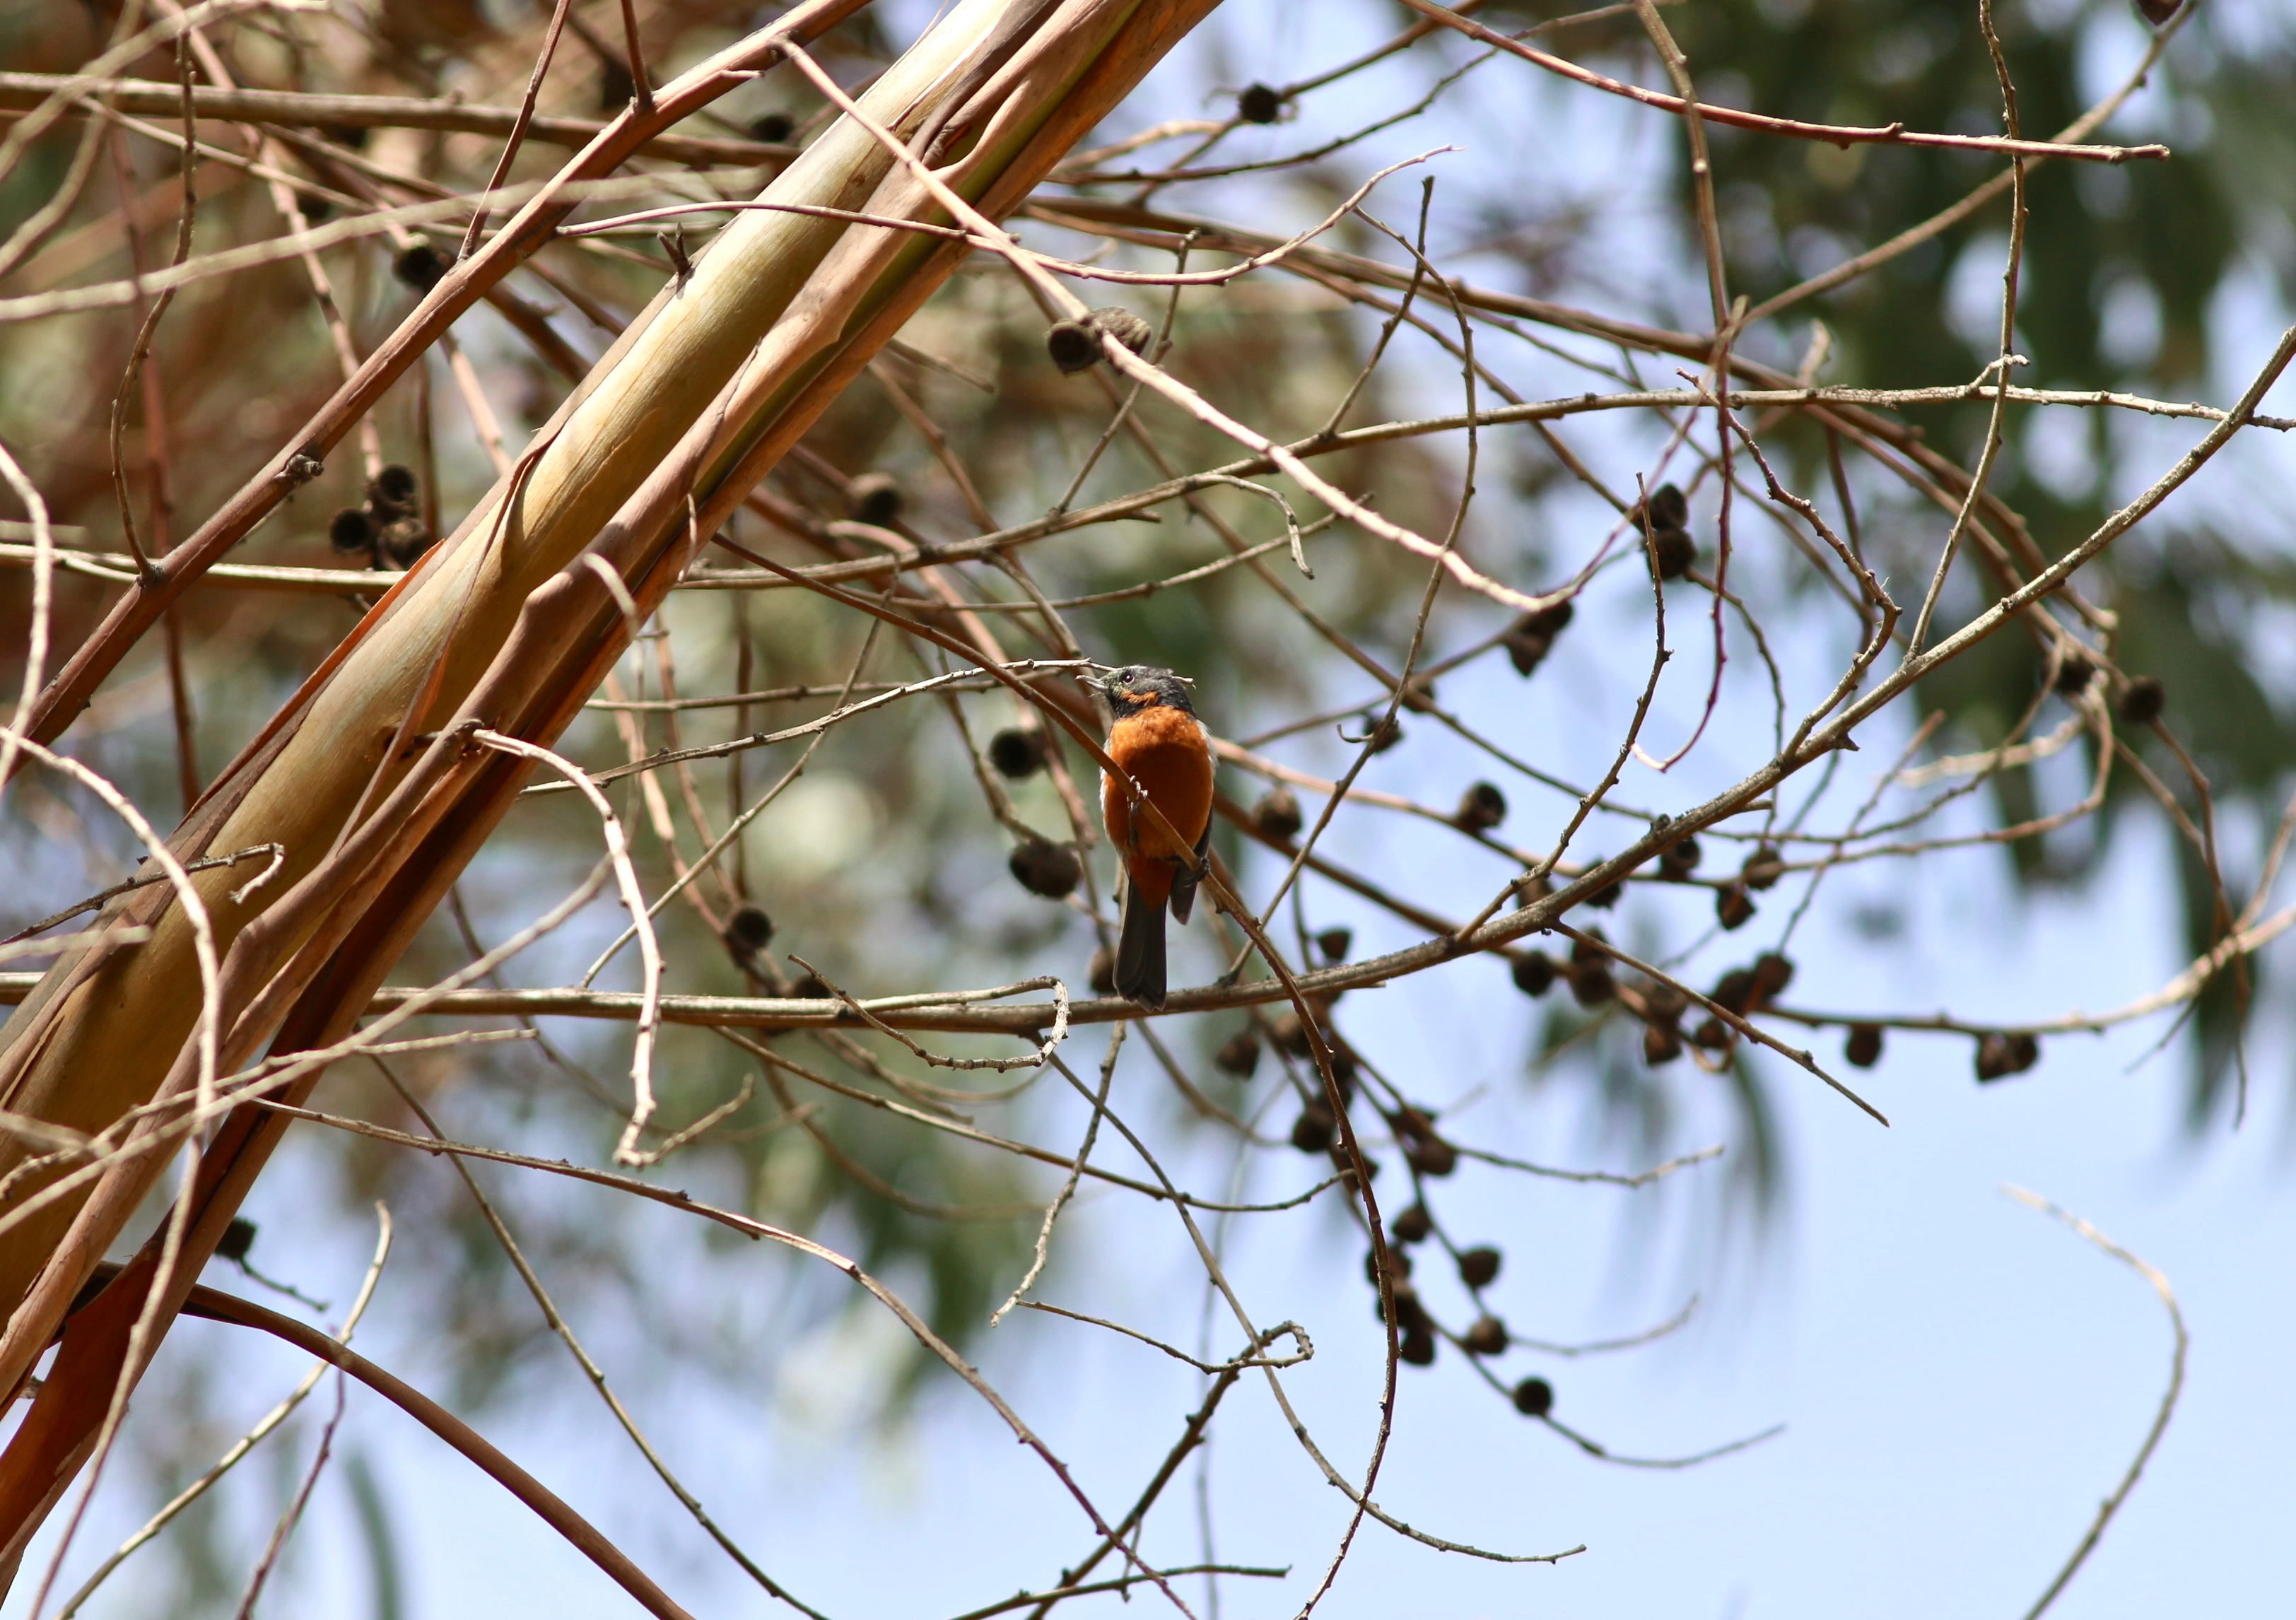 Photo of a bird in a tree.